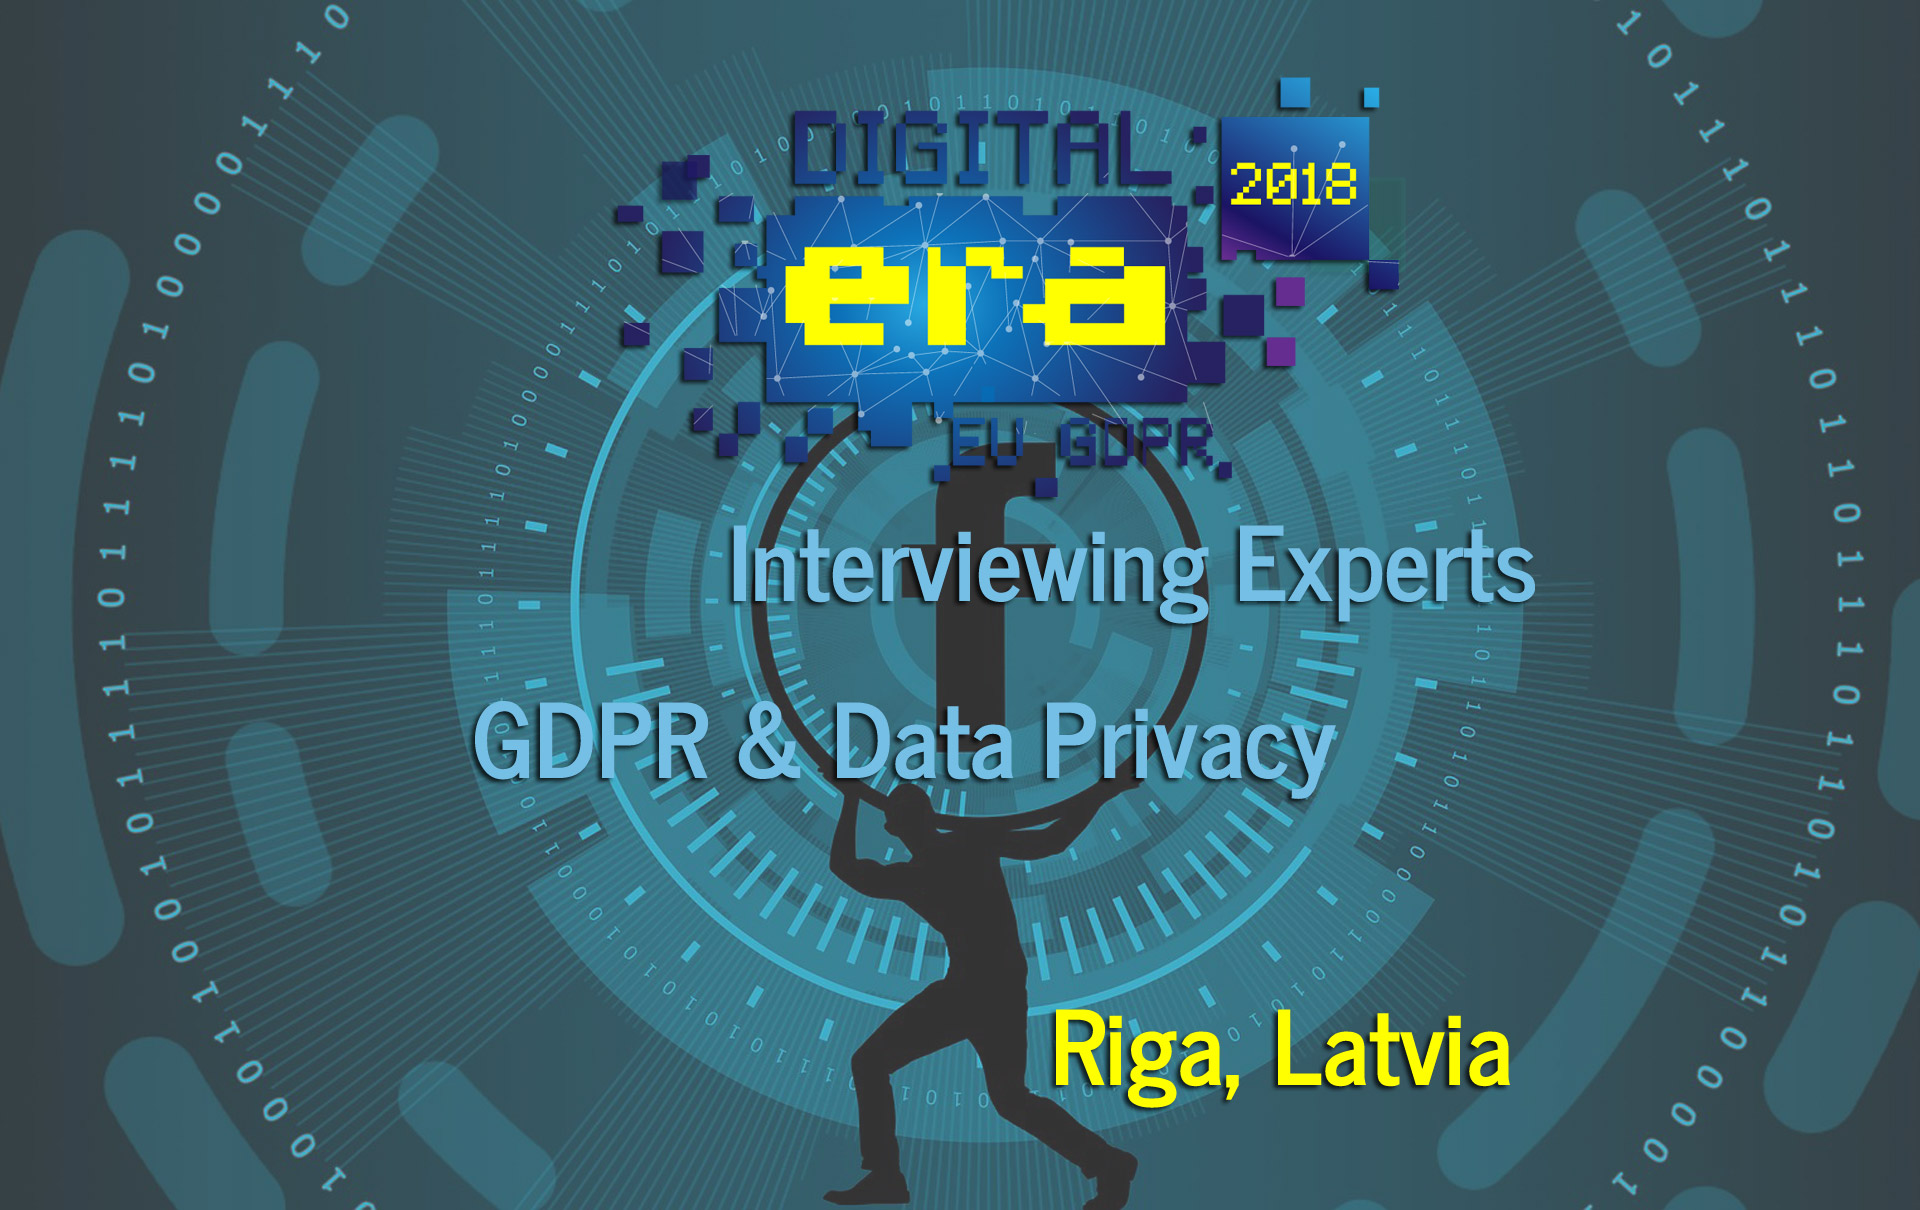 Digital Era 2018 Riga Latvia: Interviews with experts on GDPR and data privacy